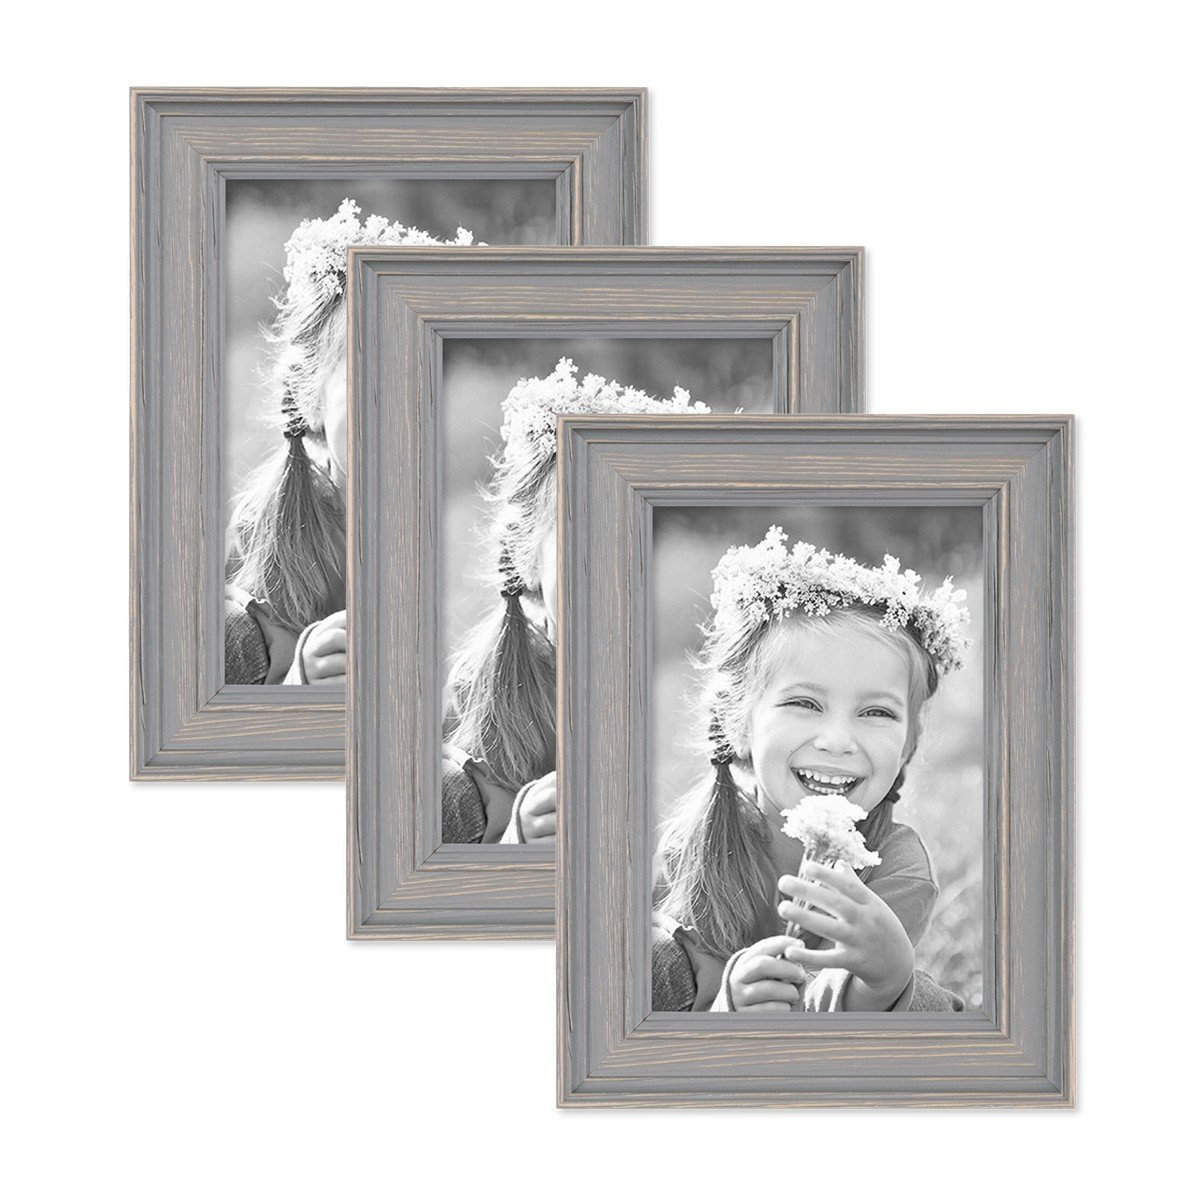 Amazon.com: 3 Piece Set of Picture Frames in Scandinavian Country ...